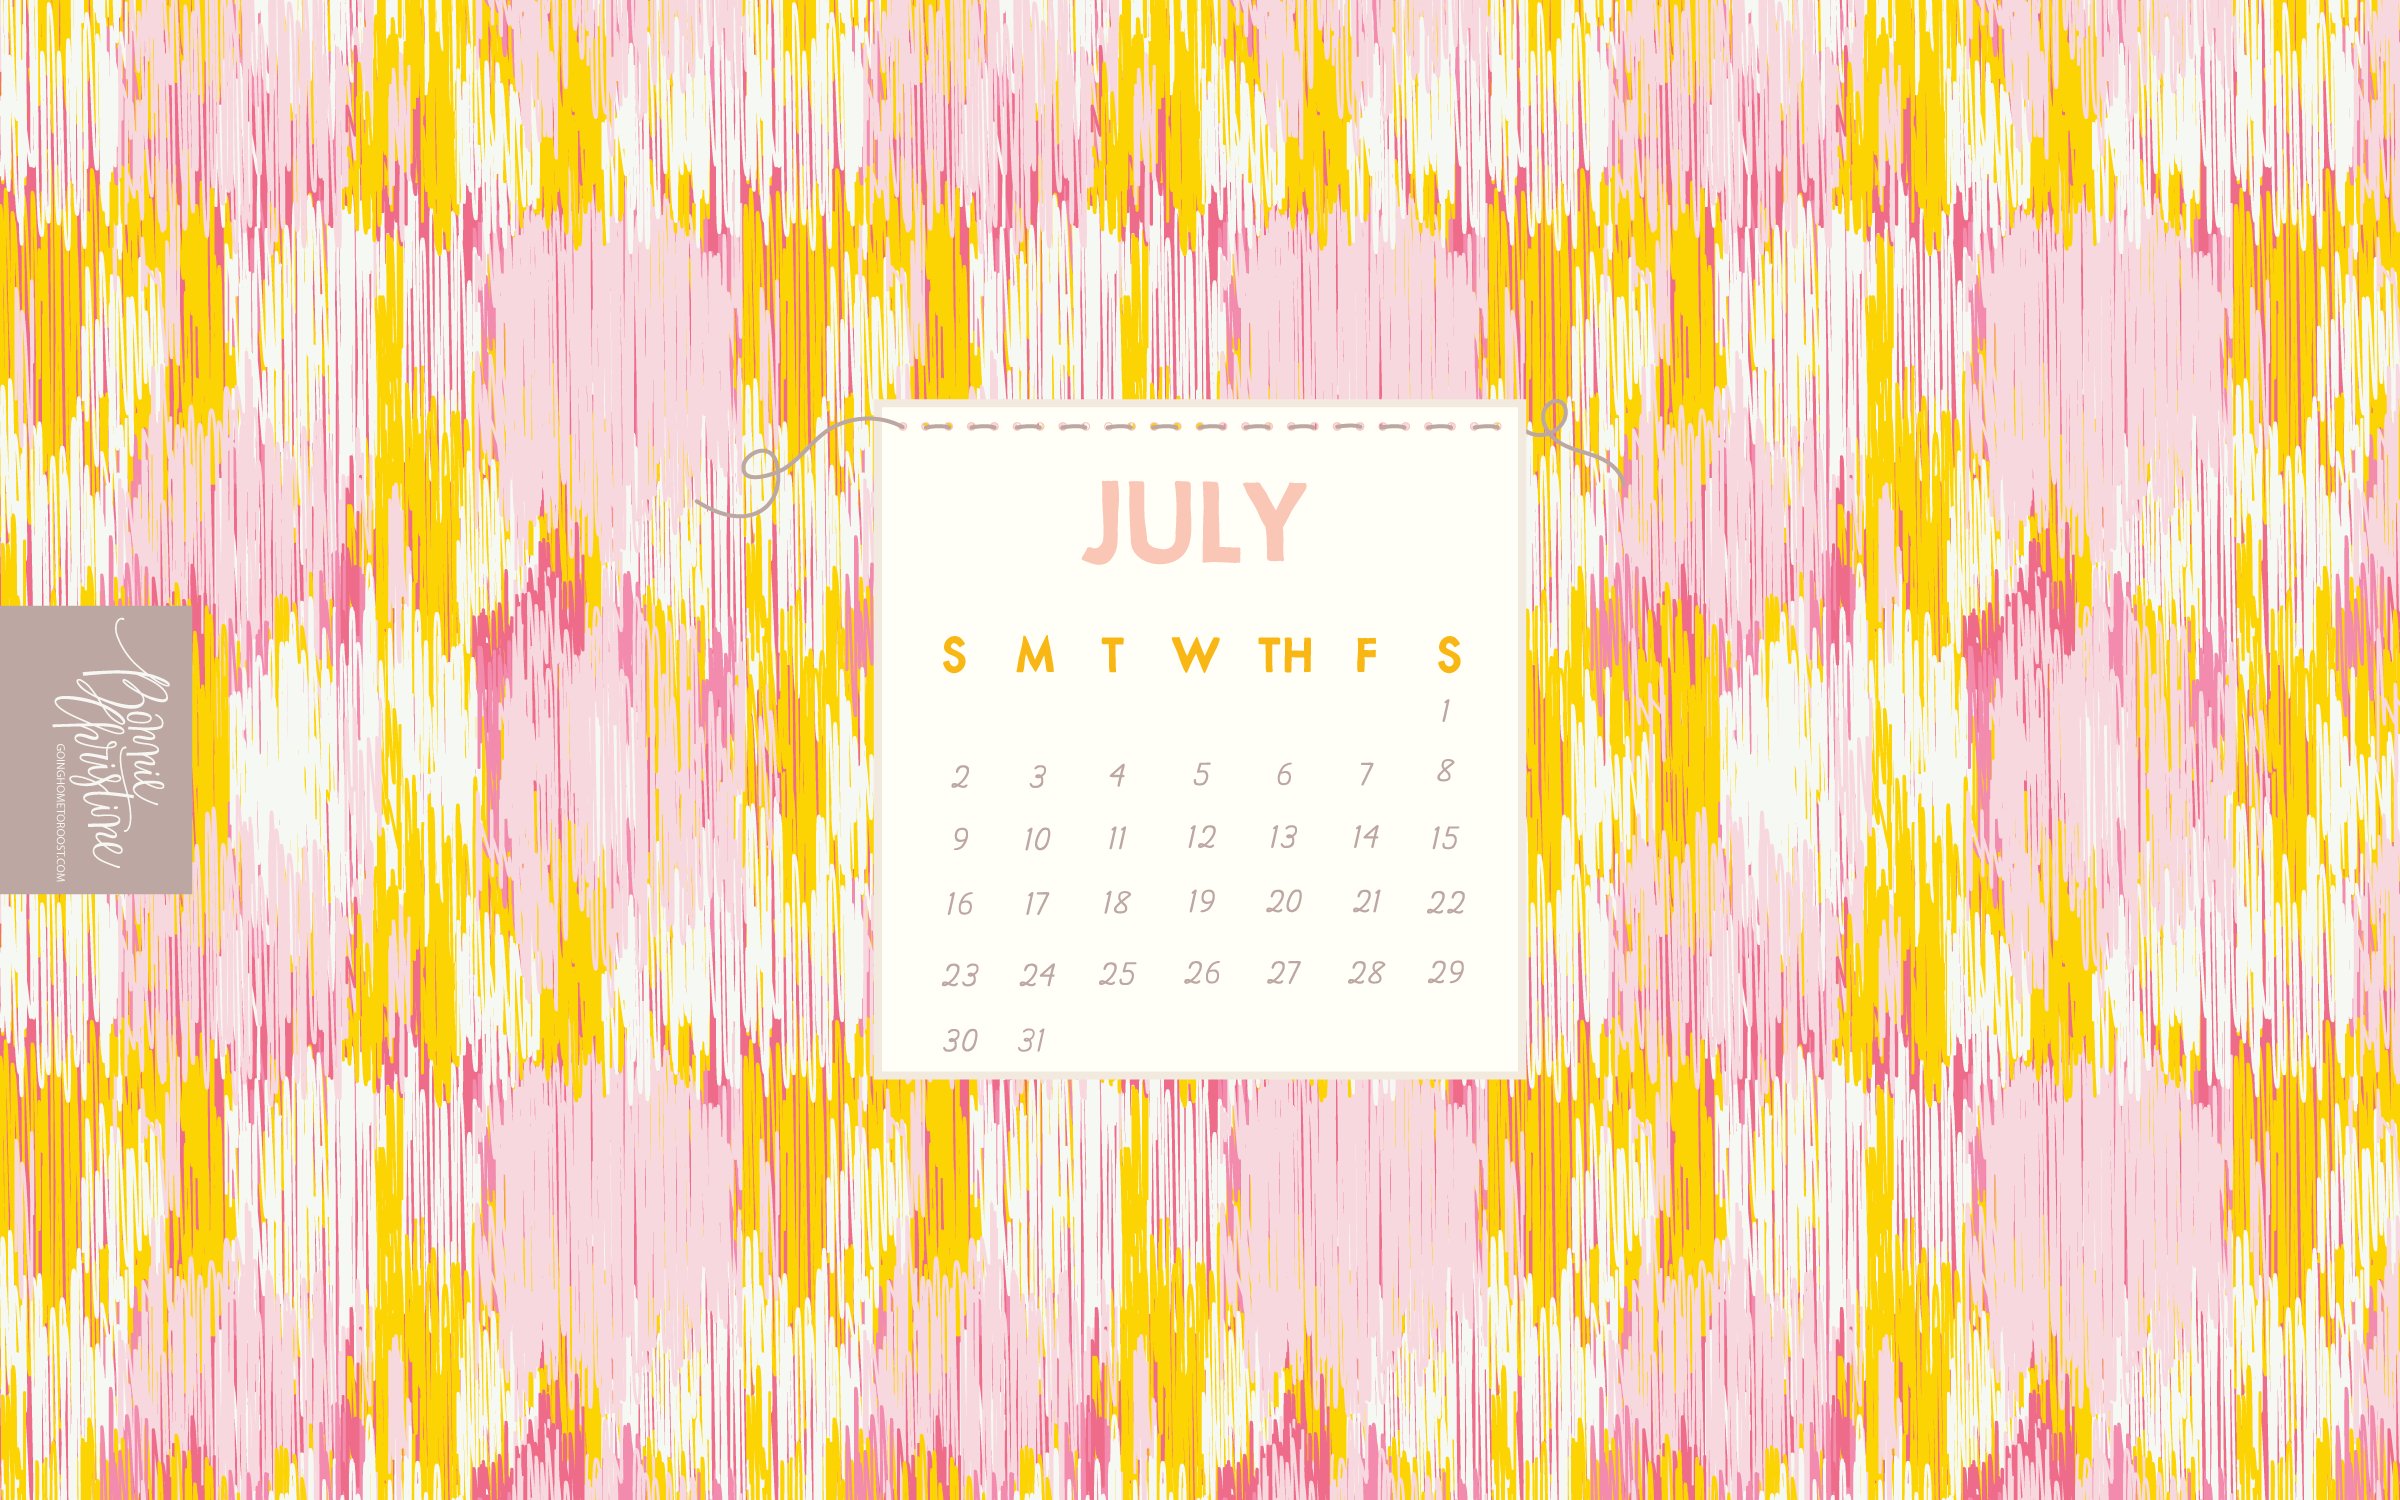 July 2019 Desk Calendar Wallpaper